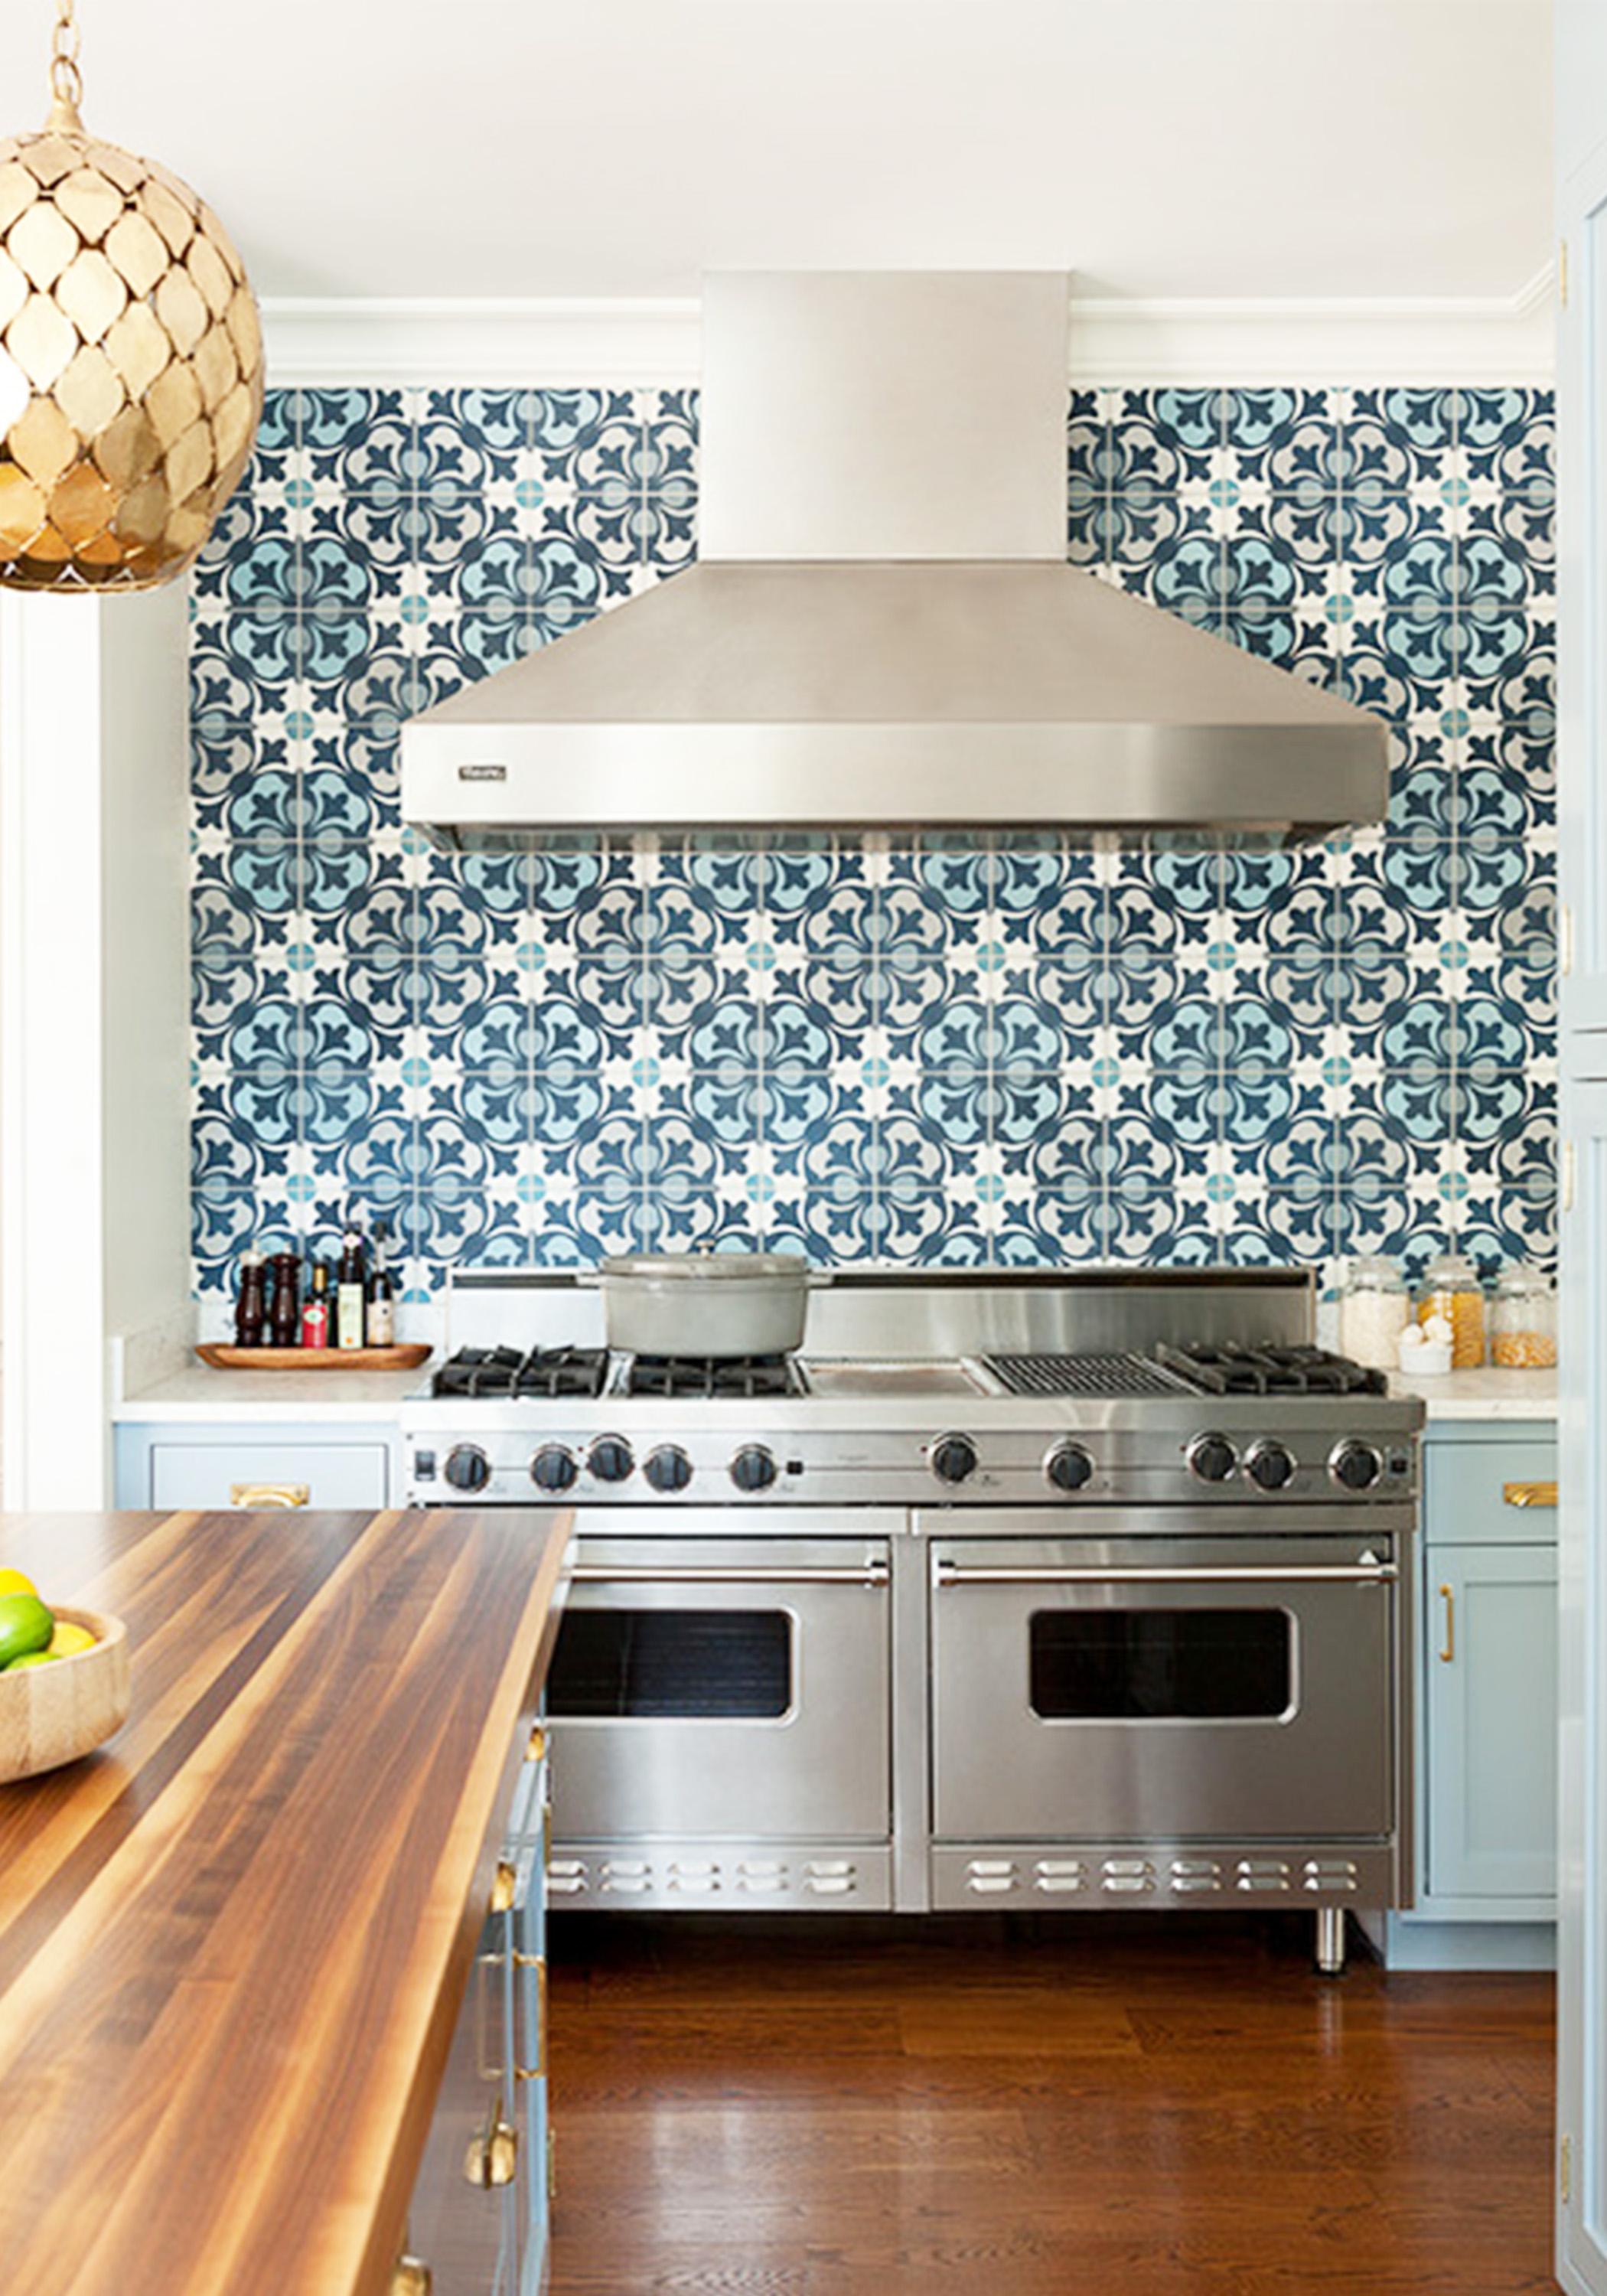 17 Tempting Tile Backsplash Ideas for Behind the Stove | COCOCOZY on